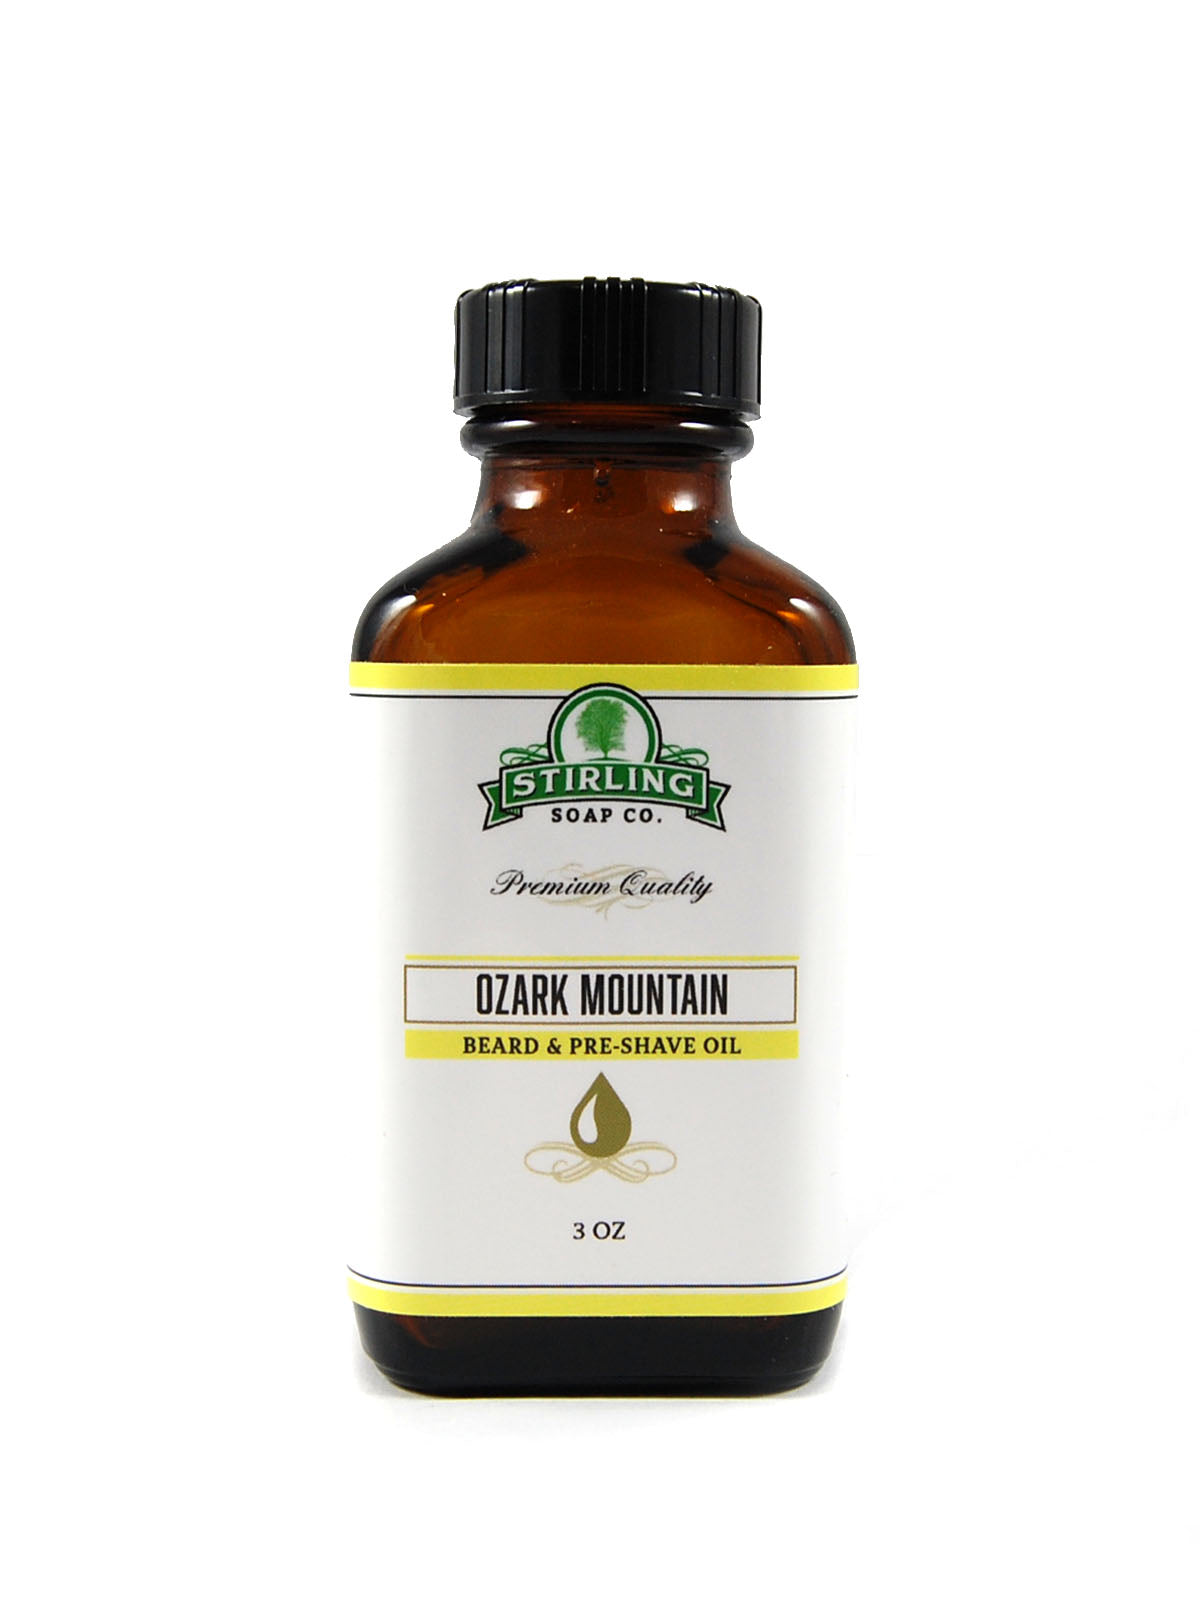 Ozark Mountain - Beard & Pre-Shave Oil